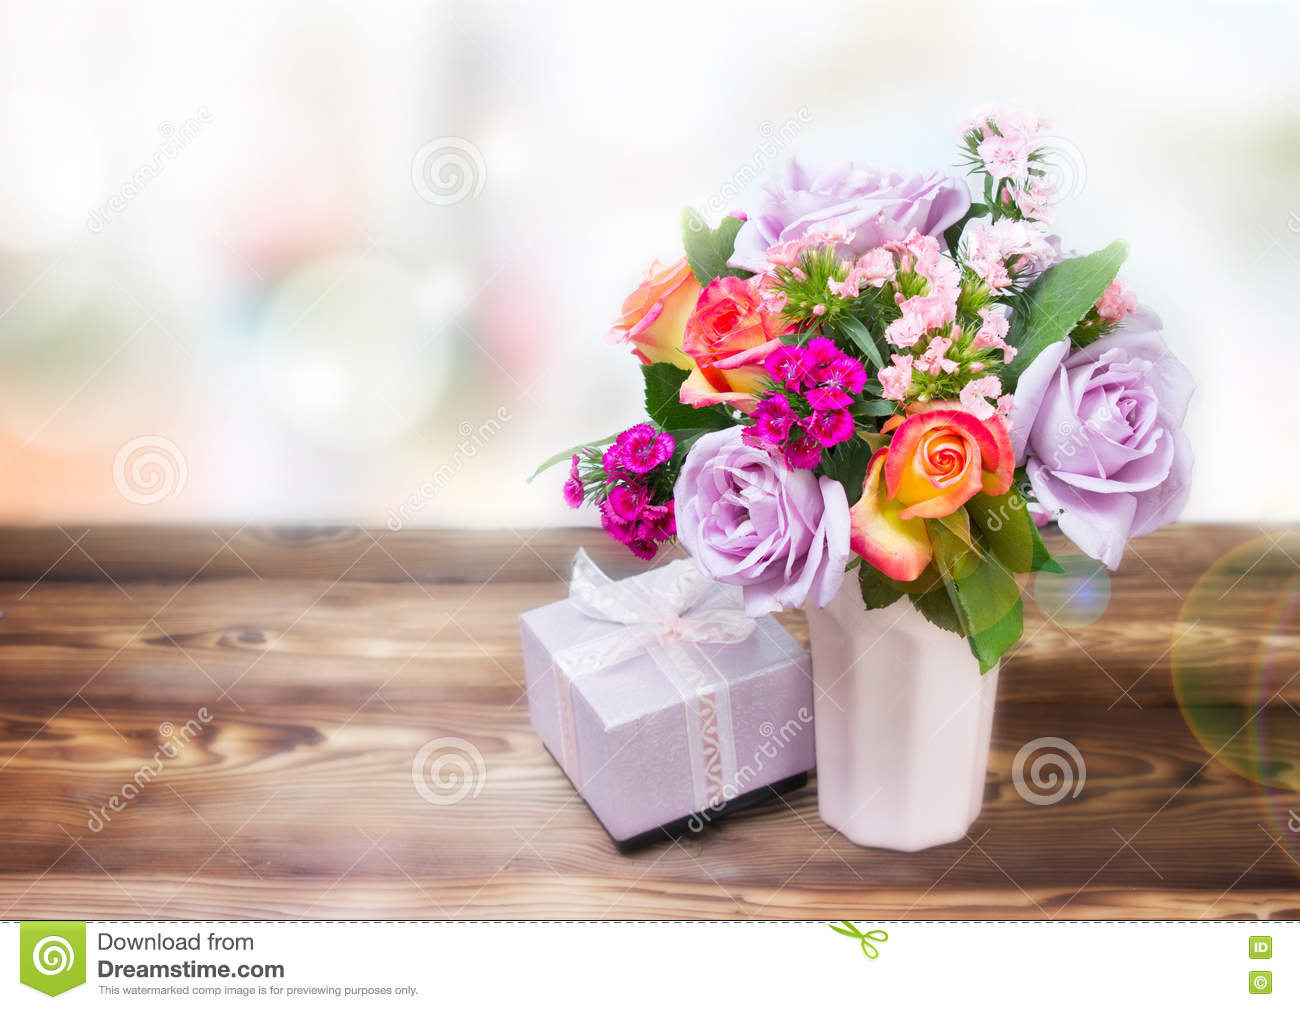 Flowers gift box on table empty space background stock photo flowers gift box on table empty space background reviewsmspy